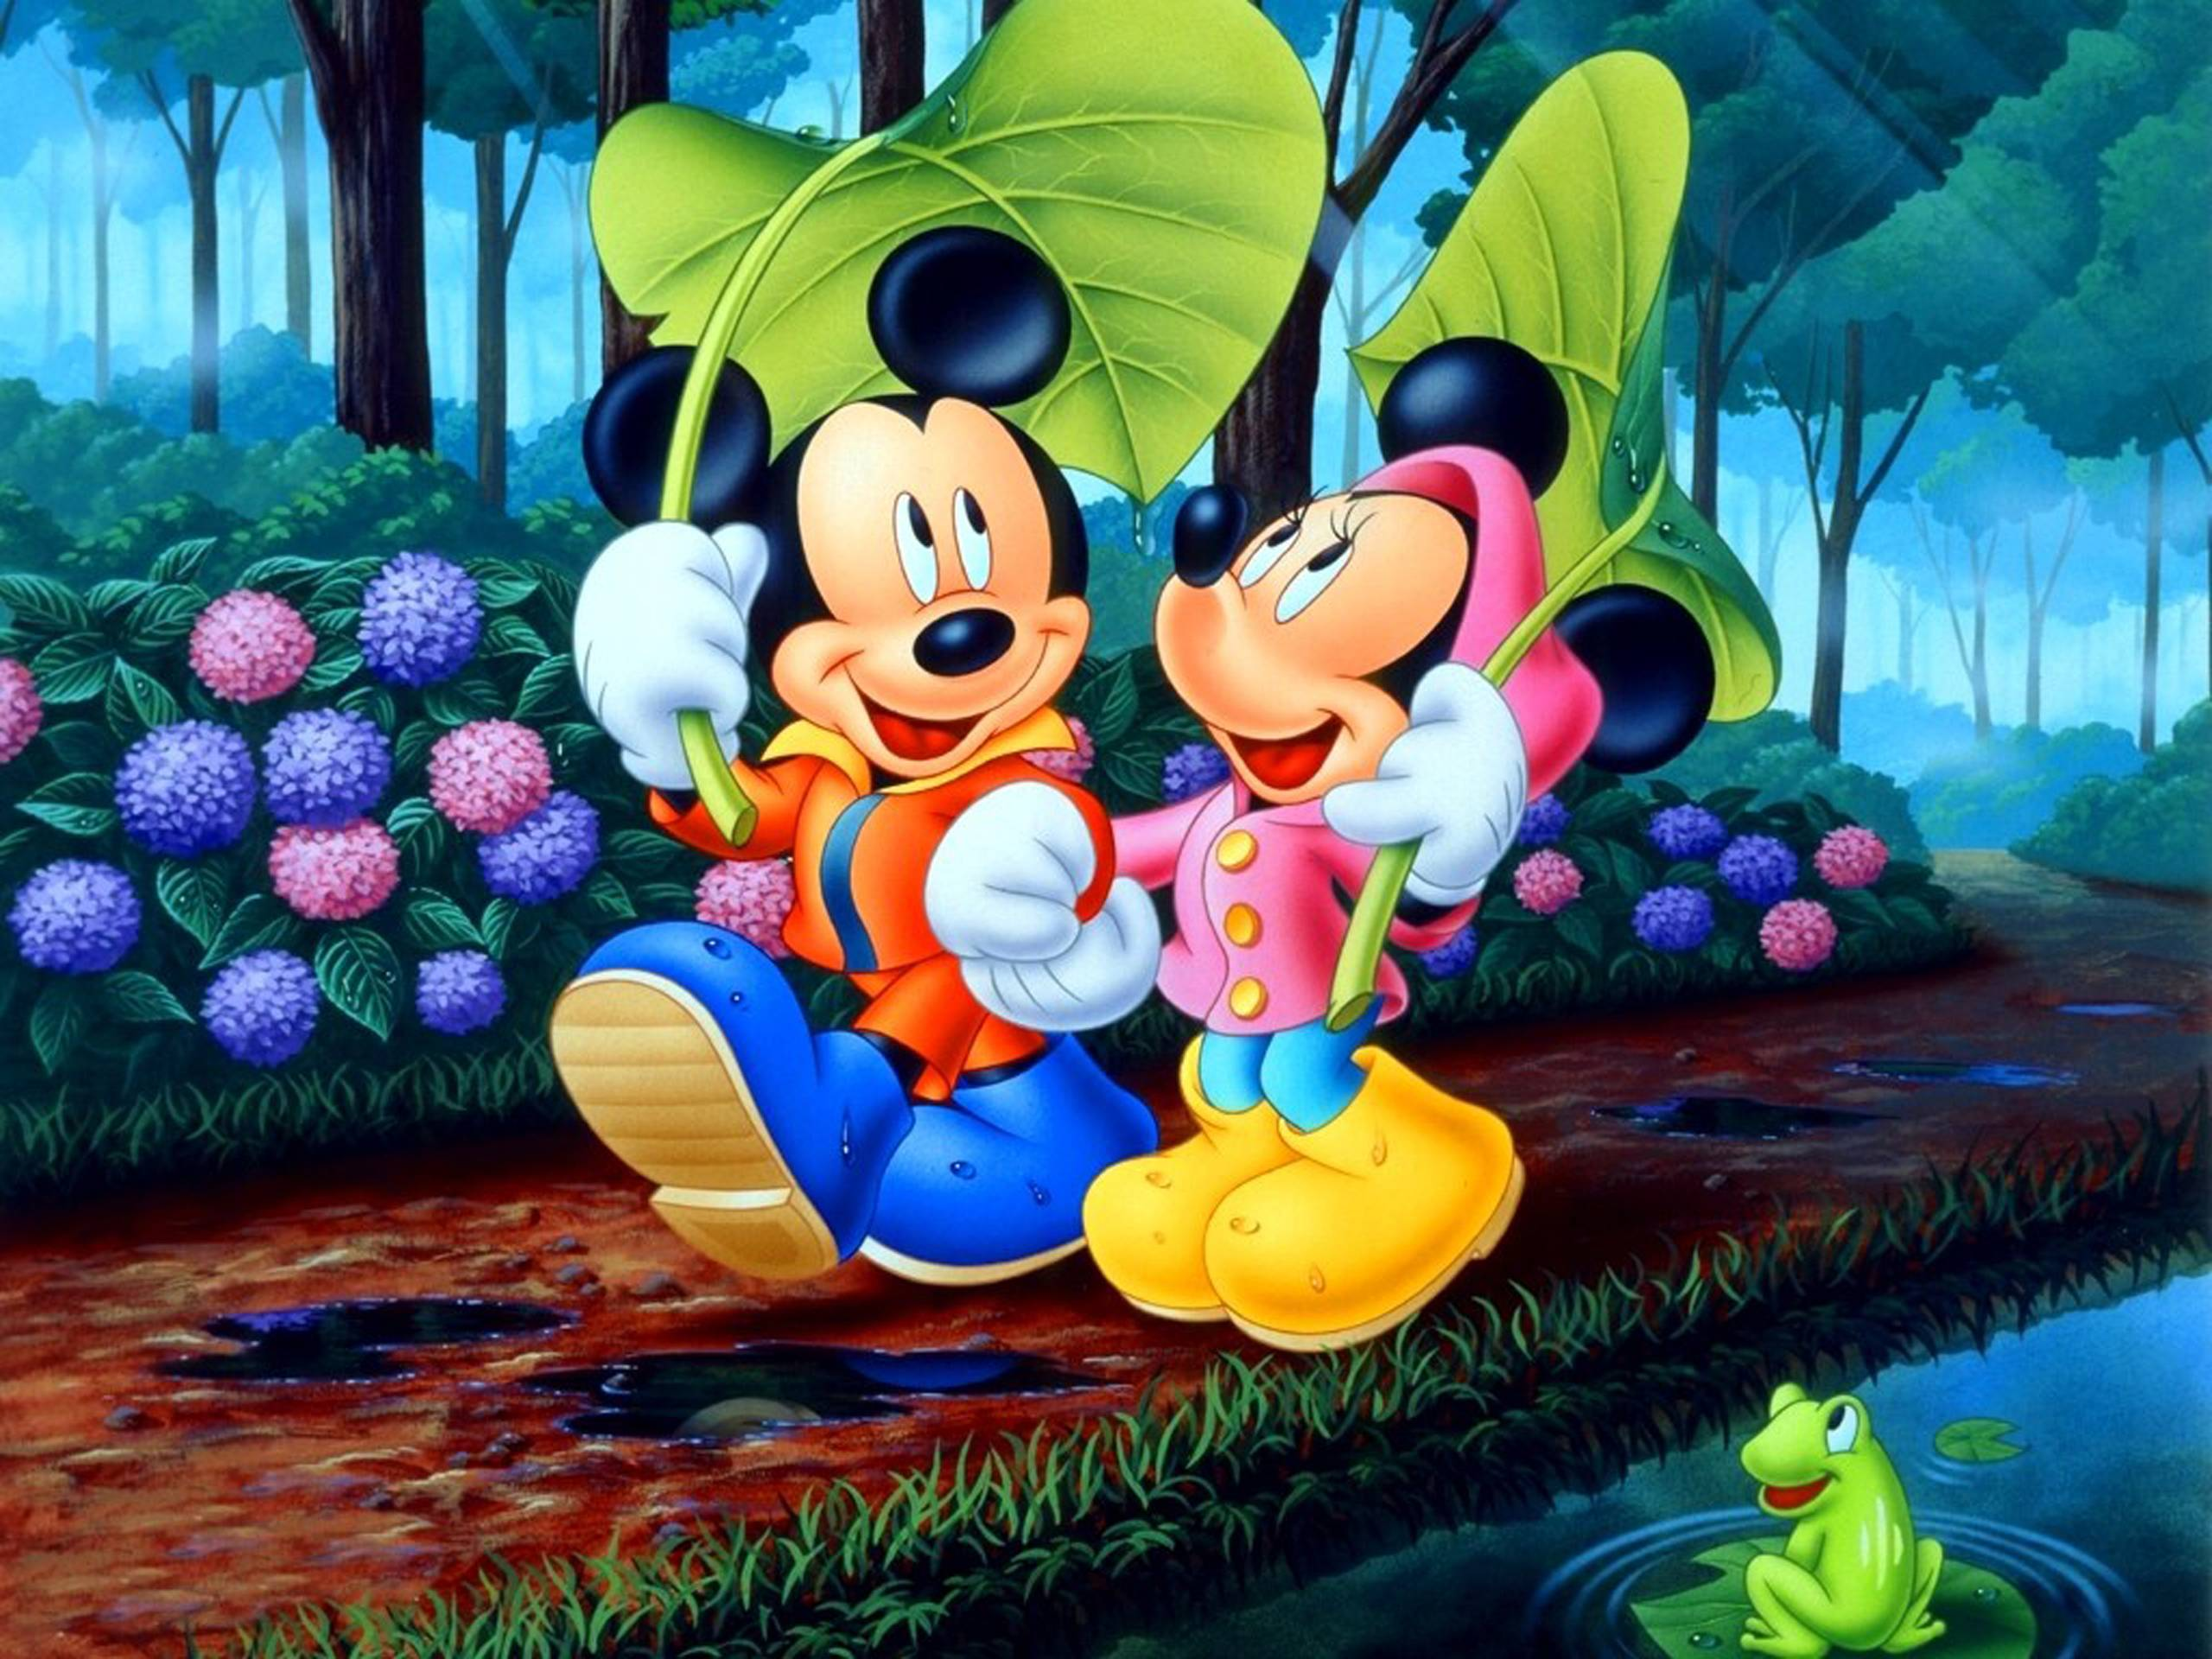 25 Disney Wallpapers Backgrounds Images Pictures Design 2560x1920